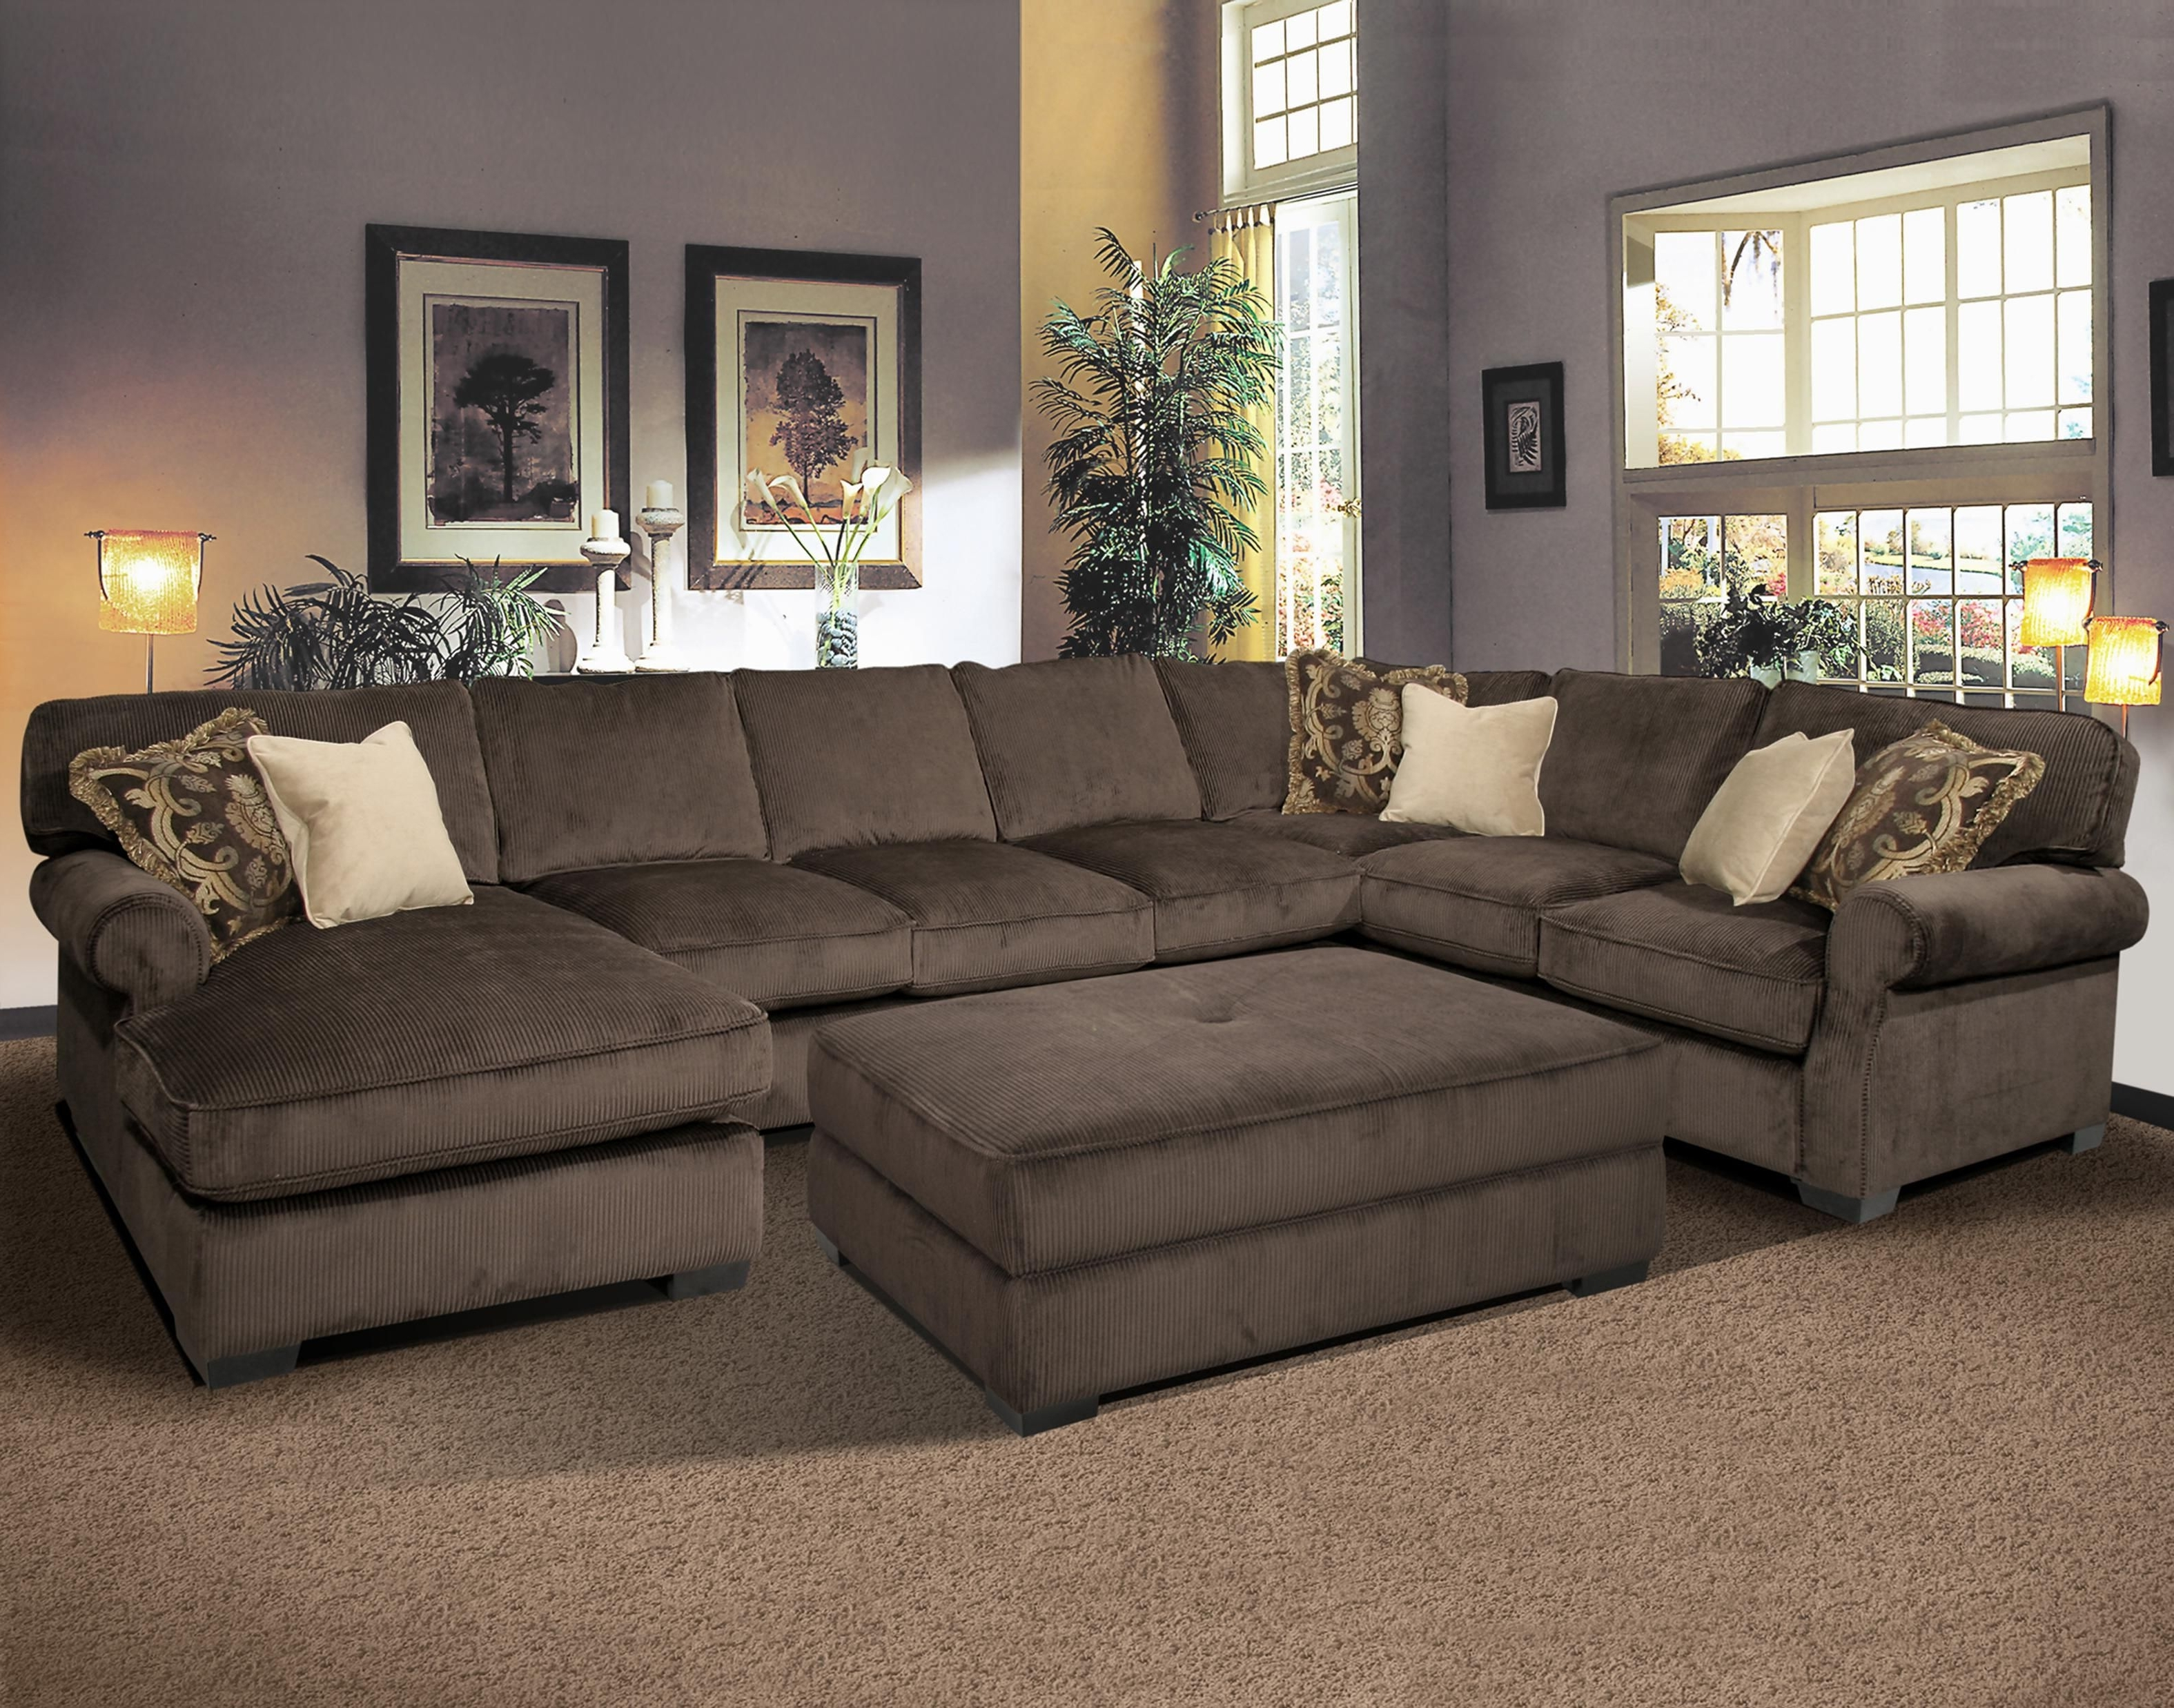 Big And Comfy Grand Island Large, 7 Seat Sectional Sofa With Right Regarding Well Known Comfy Sectional Sofas (Gallery 1 of 20)